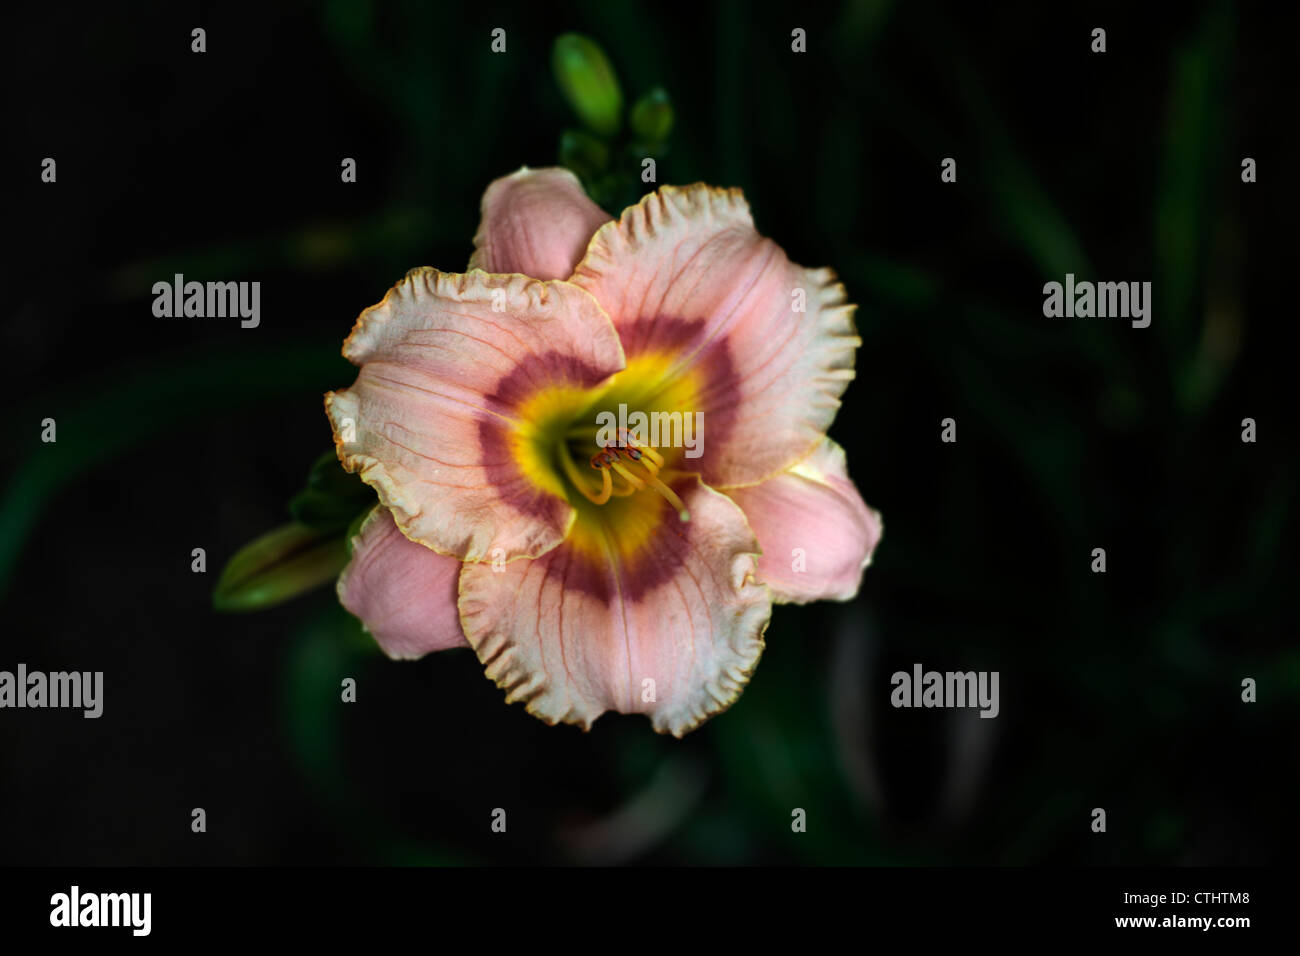 Peachy lily flower. - Stock Image